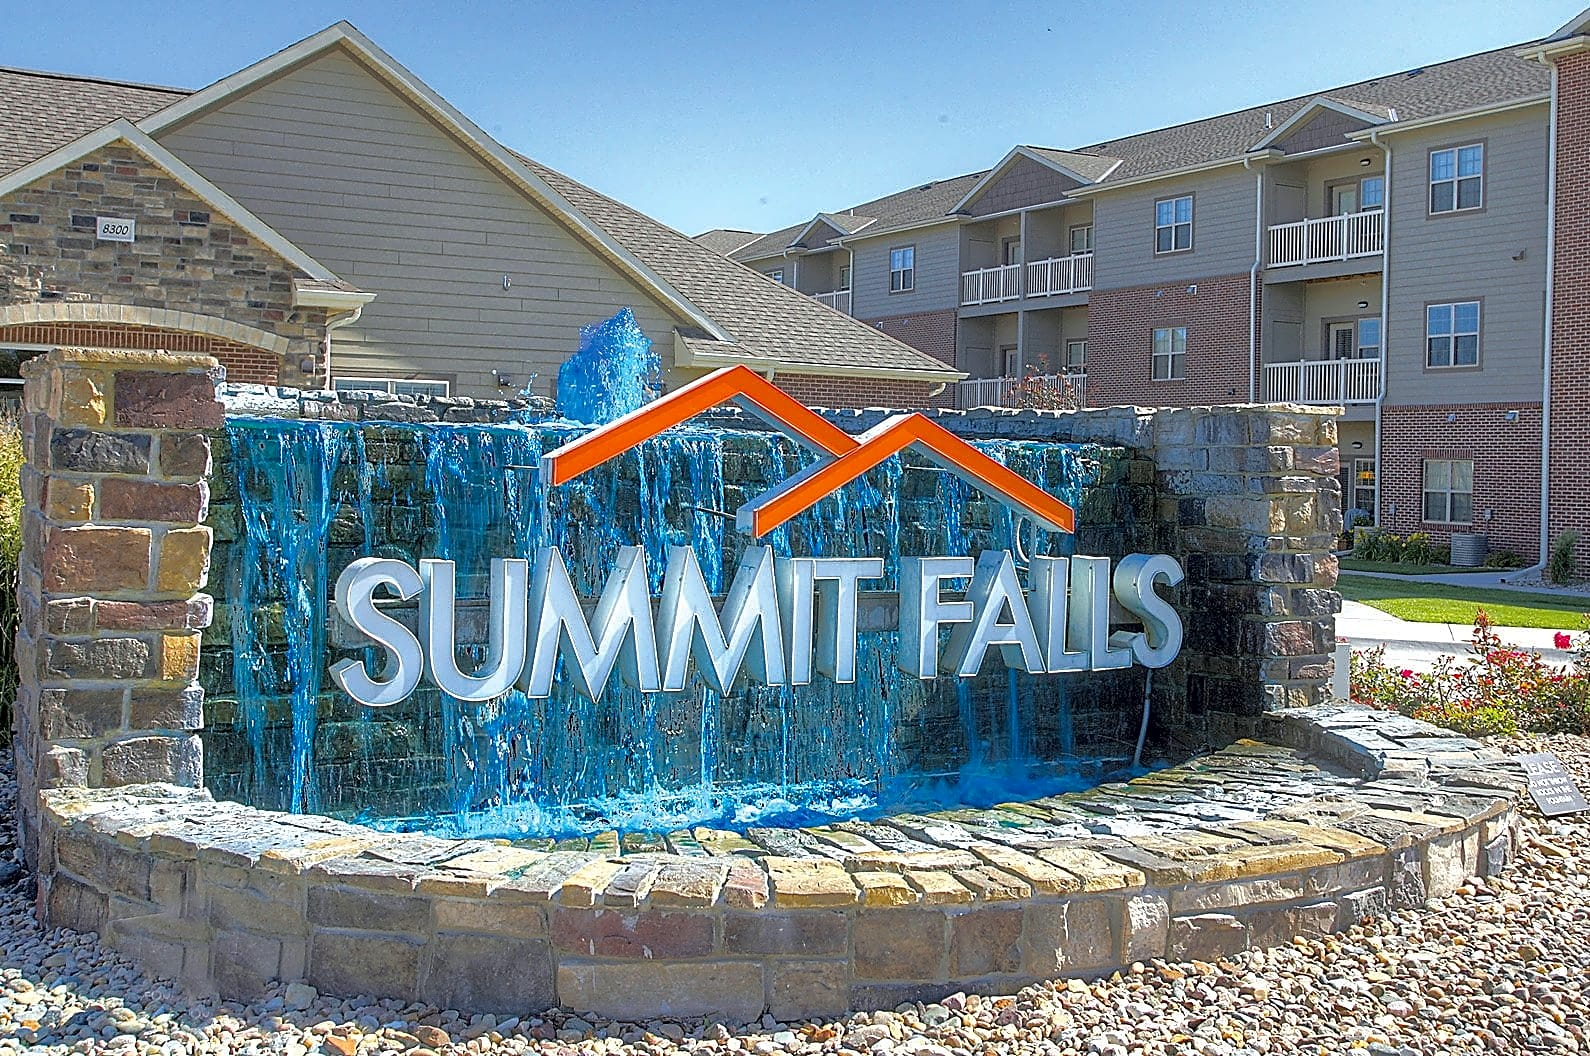 Apartments Near University of Nebraska Summit Falls Apartments &Townhomes for University of Nebraska - Lincoln Students in Lincoln, NE